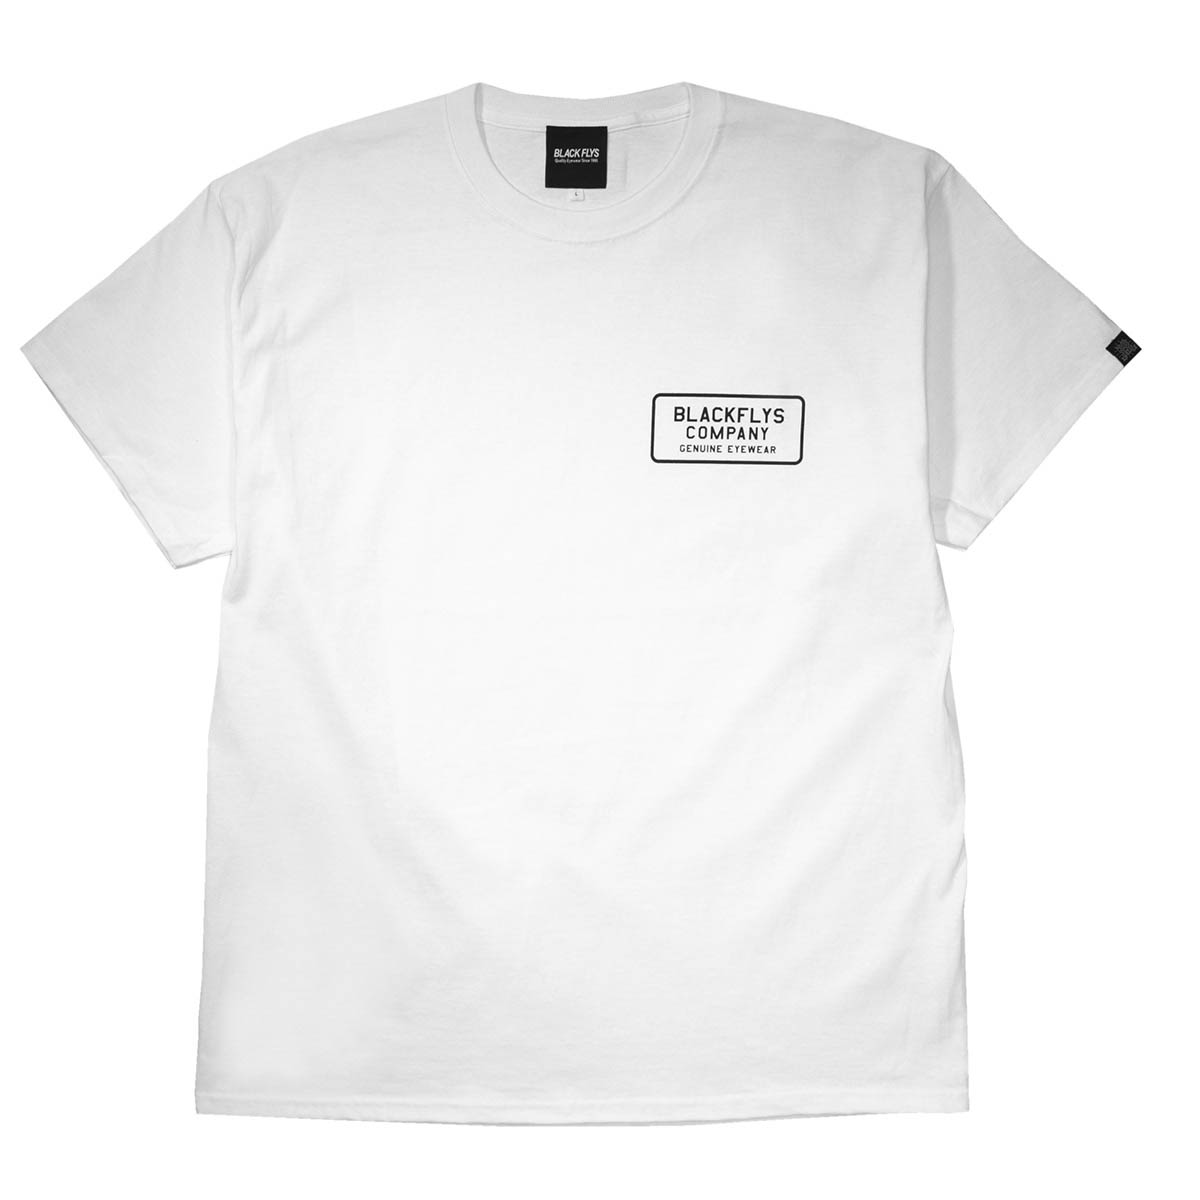 MISSION  S/S T-SHIRTS